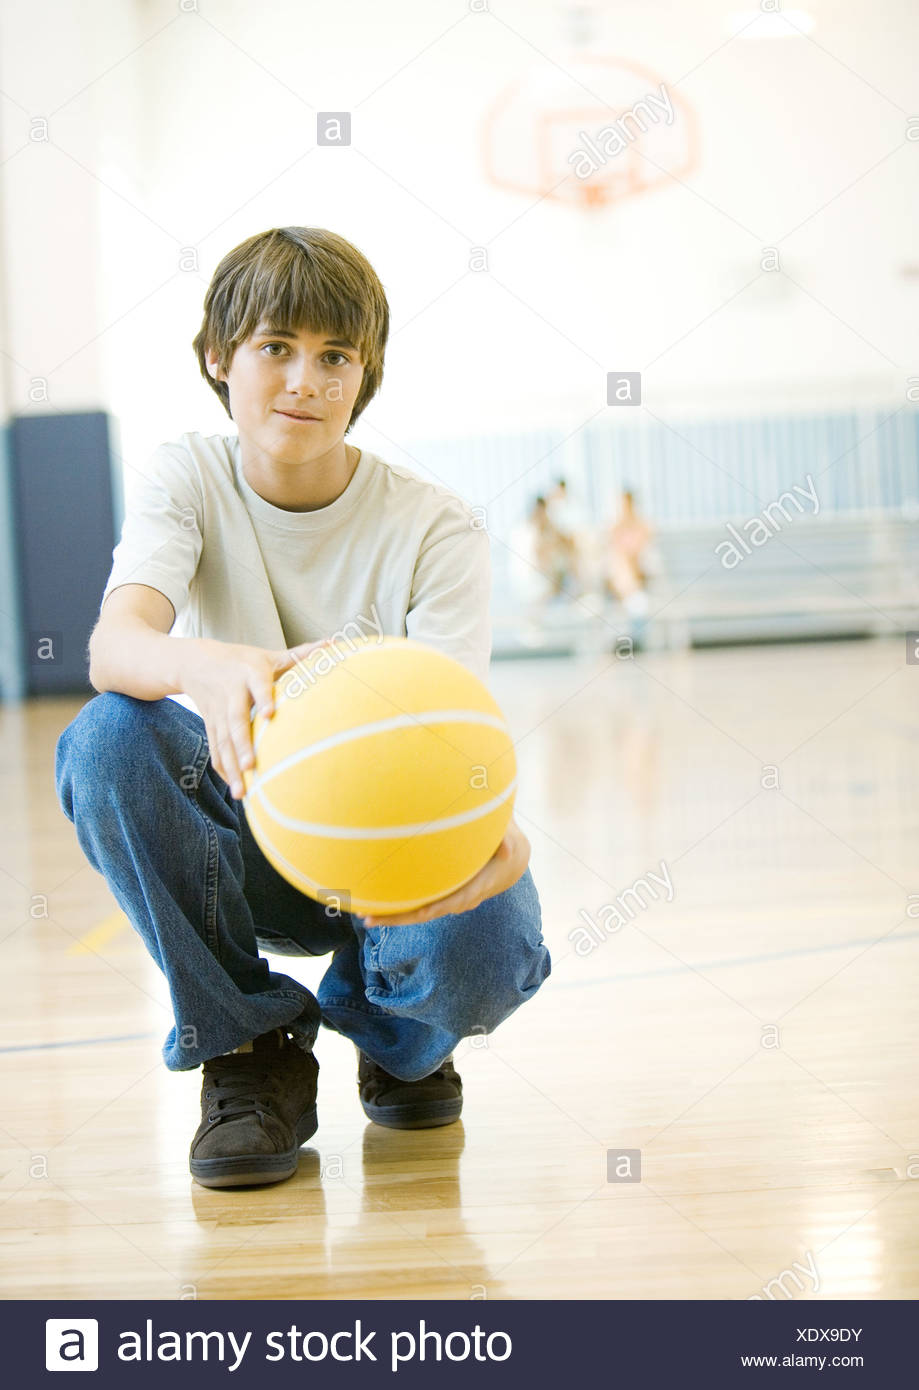 Teen boy crouching with basketball in school gym - Stock Image